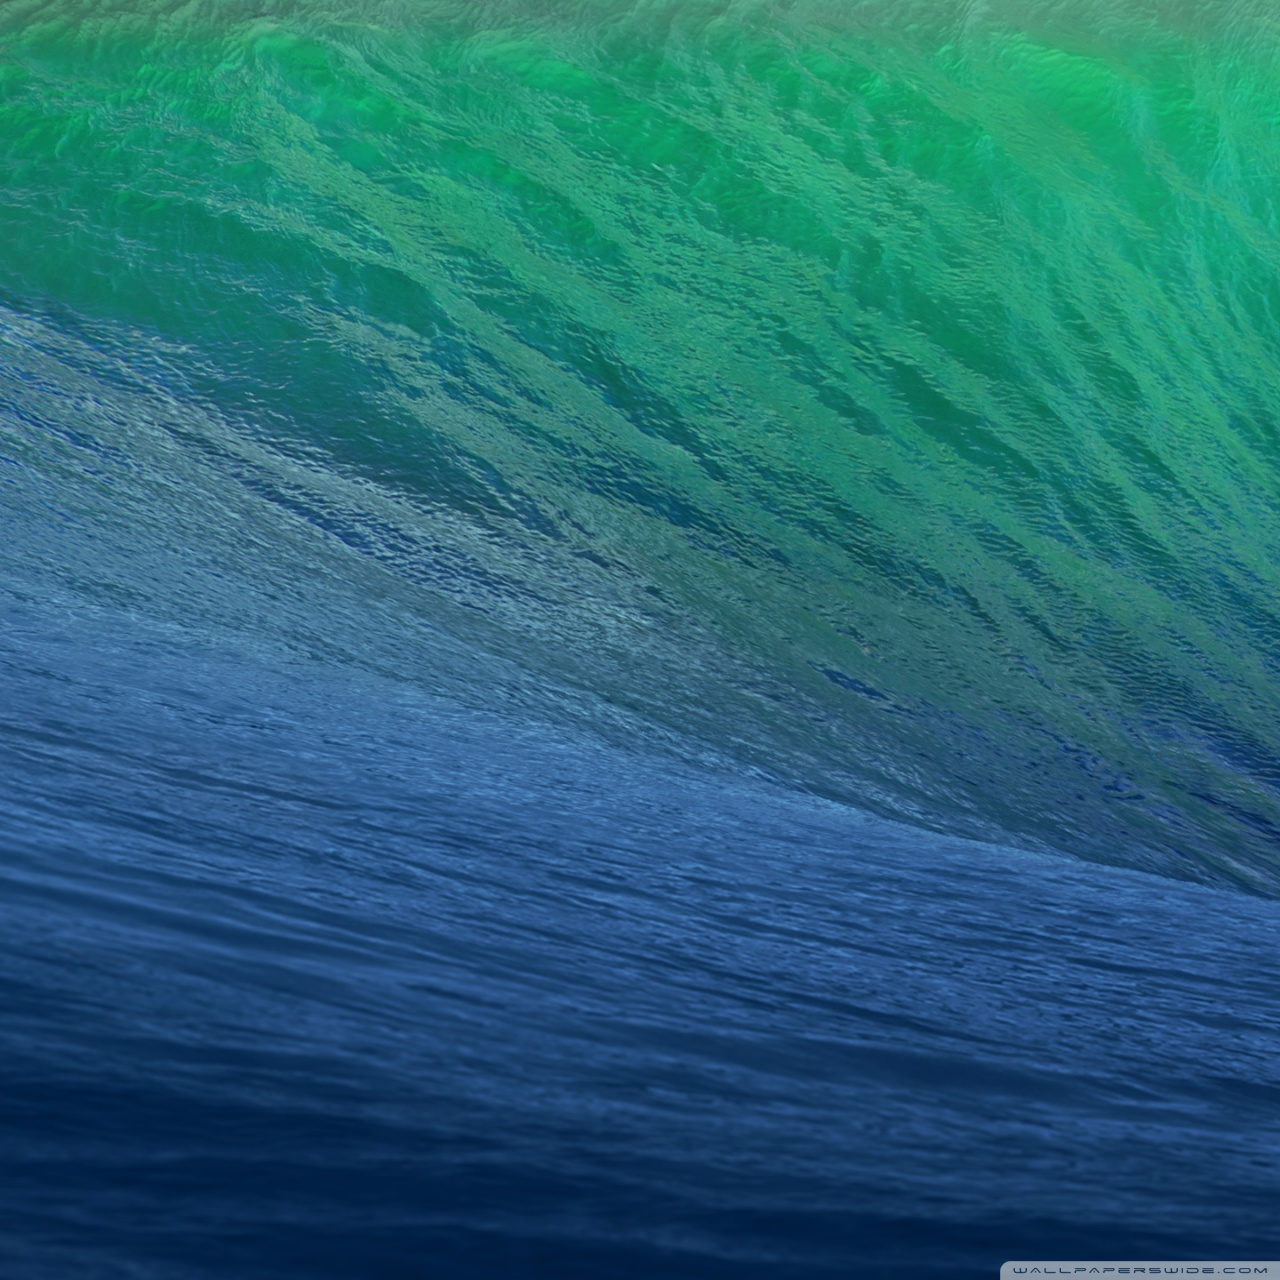 Apple Mac OS X Mavericks HD desktop wallpaper : Widescreen : High